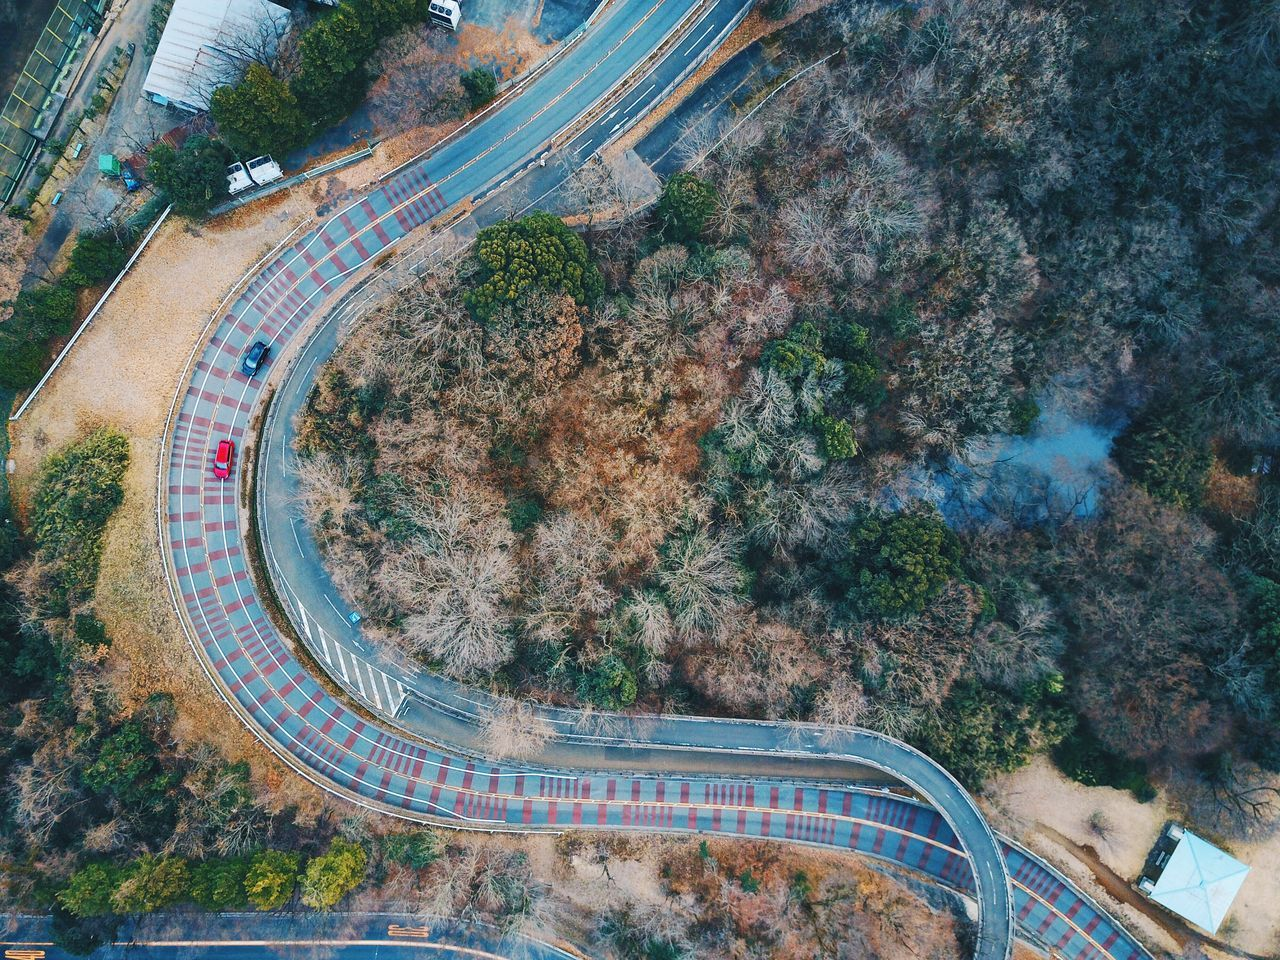 Tree Transportation High Angle View Land Vehicle Outdoors Architecture Built Structure Nature Day No People Nature Beauty In Nature Drone  Vscocam Dronephotography Power In Nature Connection VSCO Tree Aerial View Road Landscape Vscogood Aerial Photography Aerospace Industry Flying High